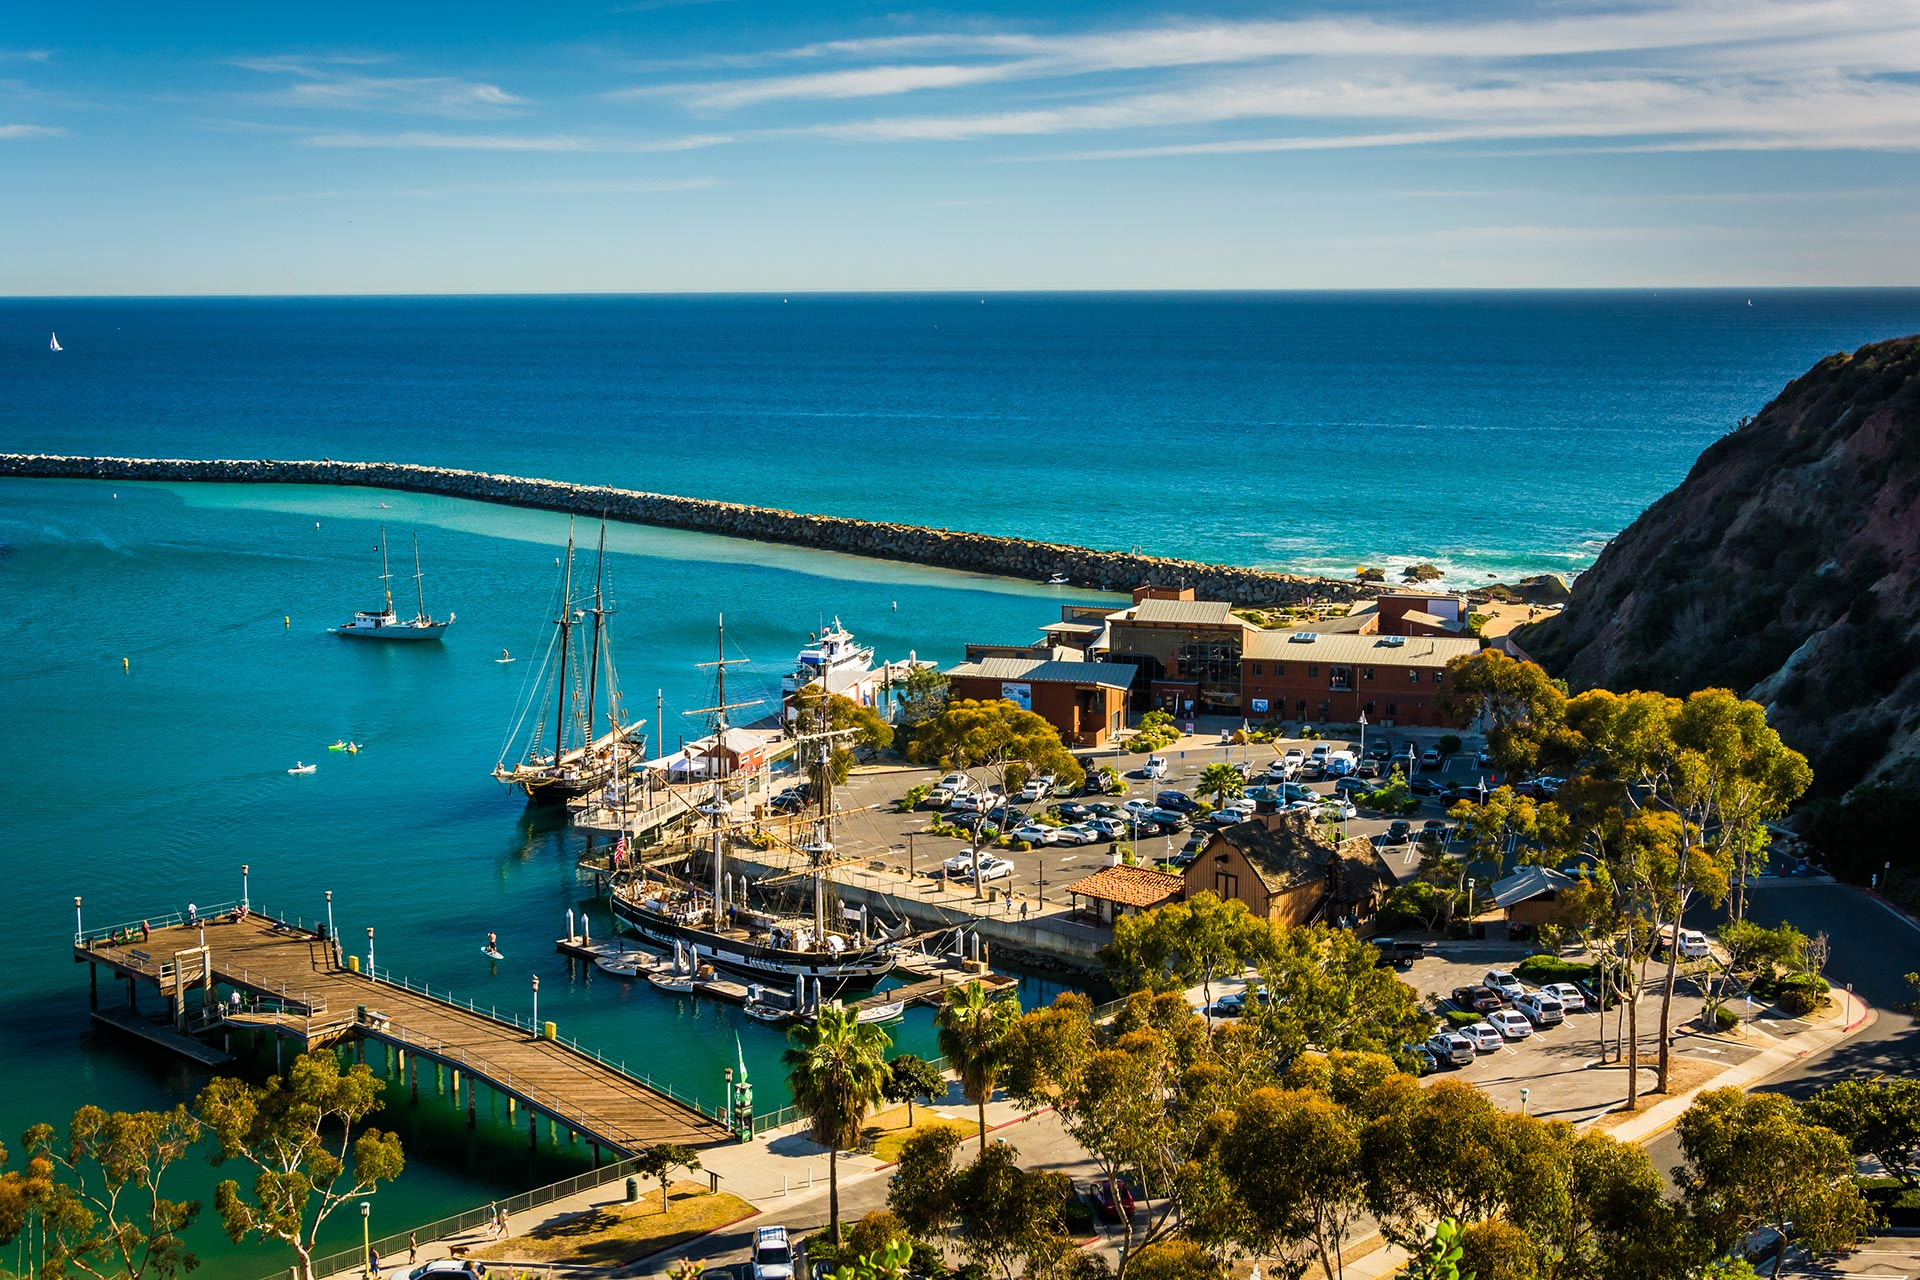 View of the harbor from Ken Sampson Overlook Park in Dana Point, California